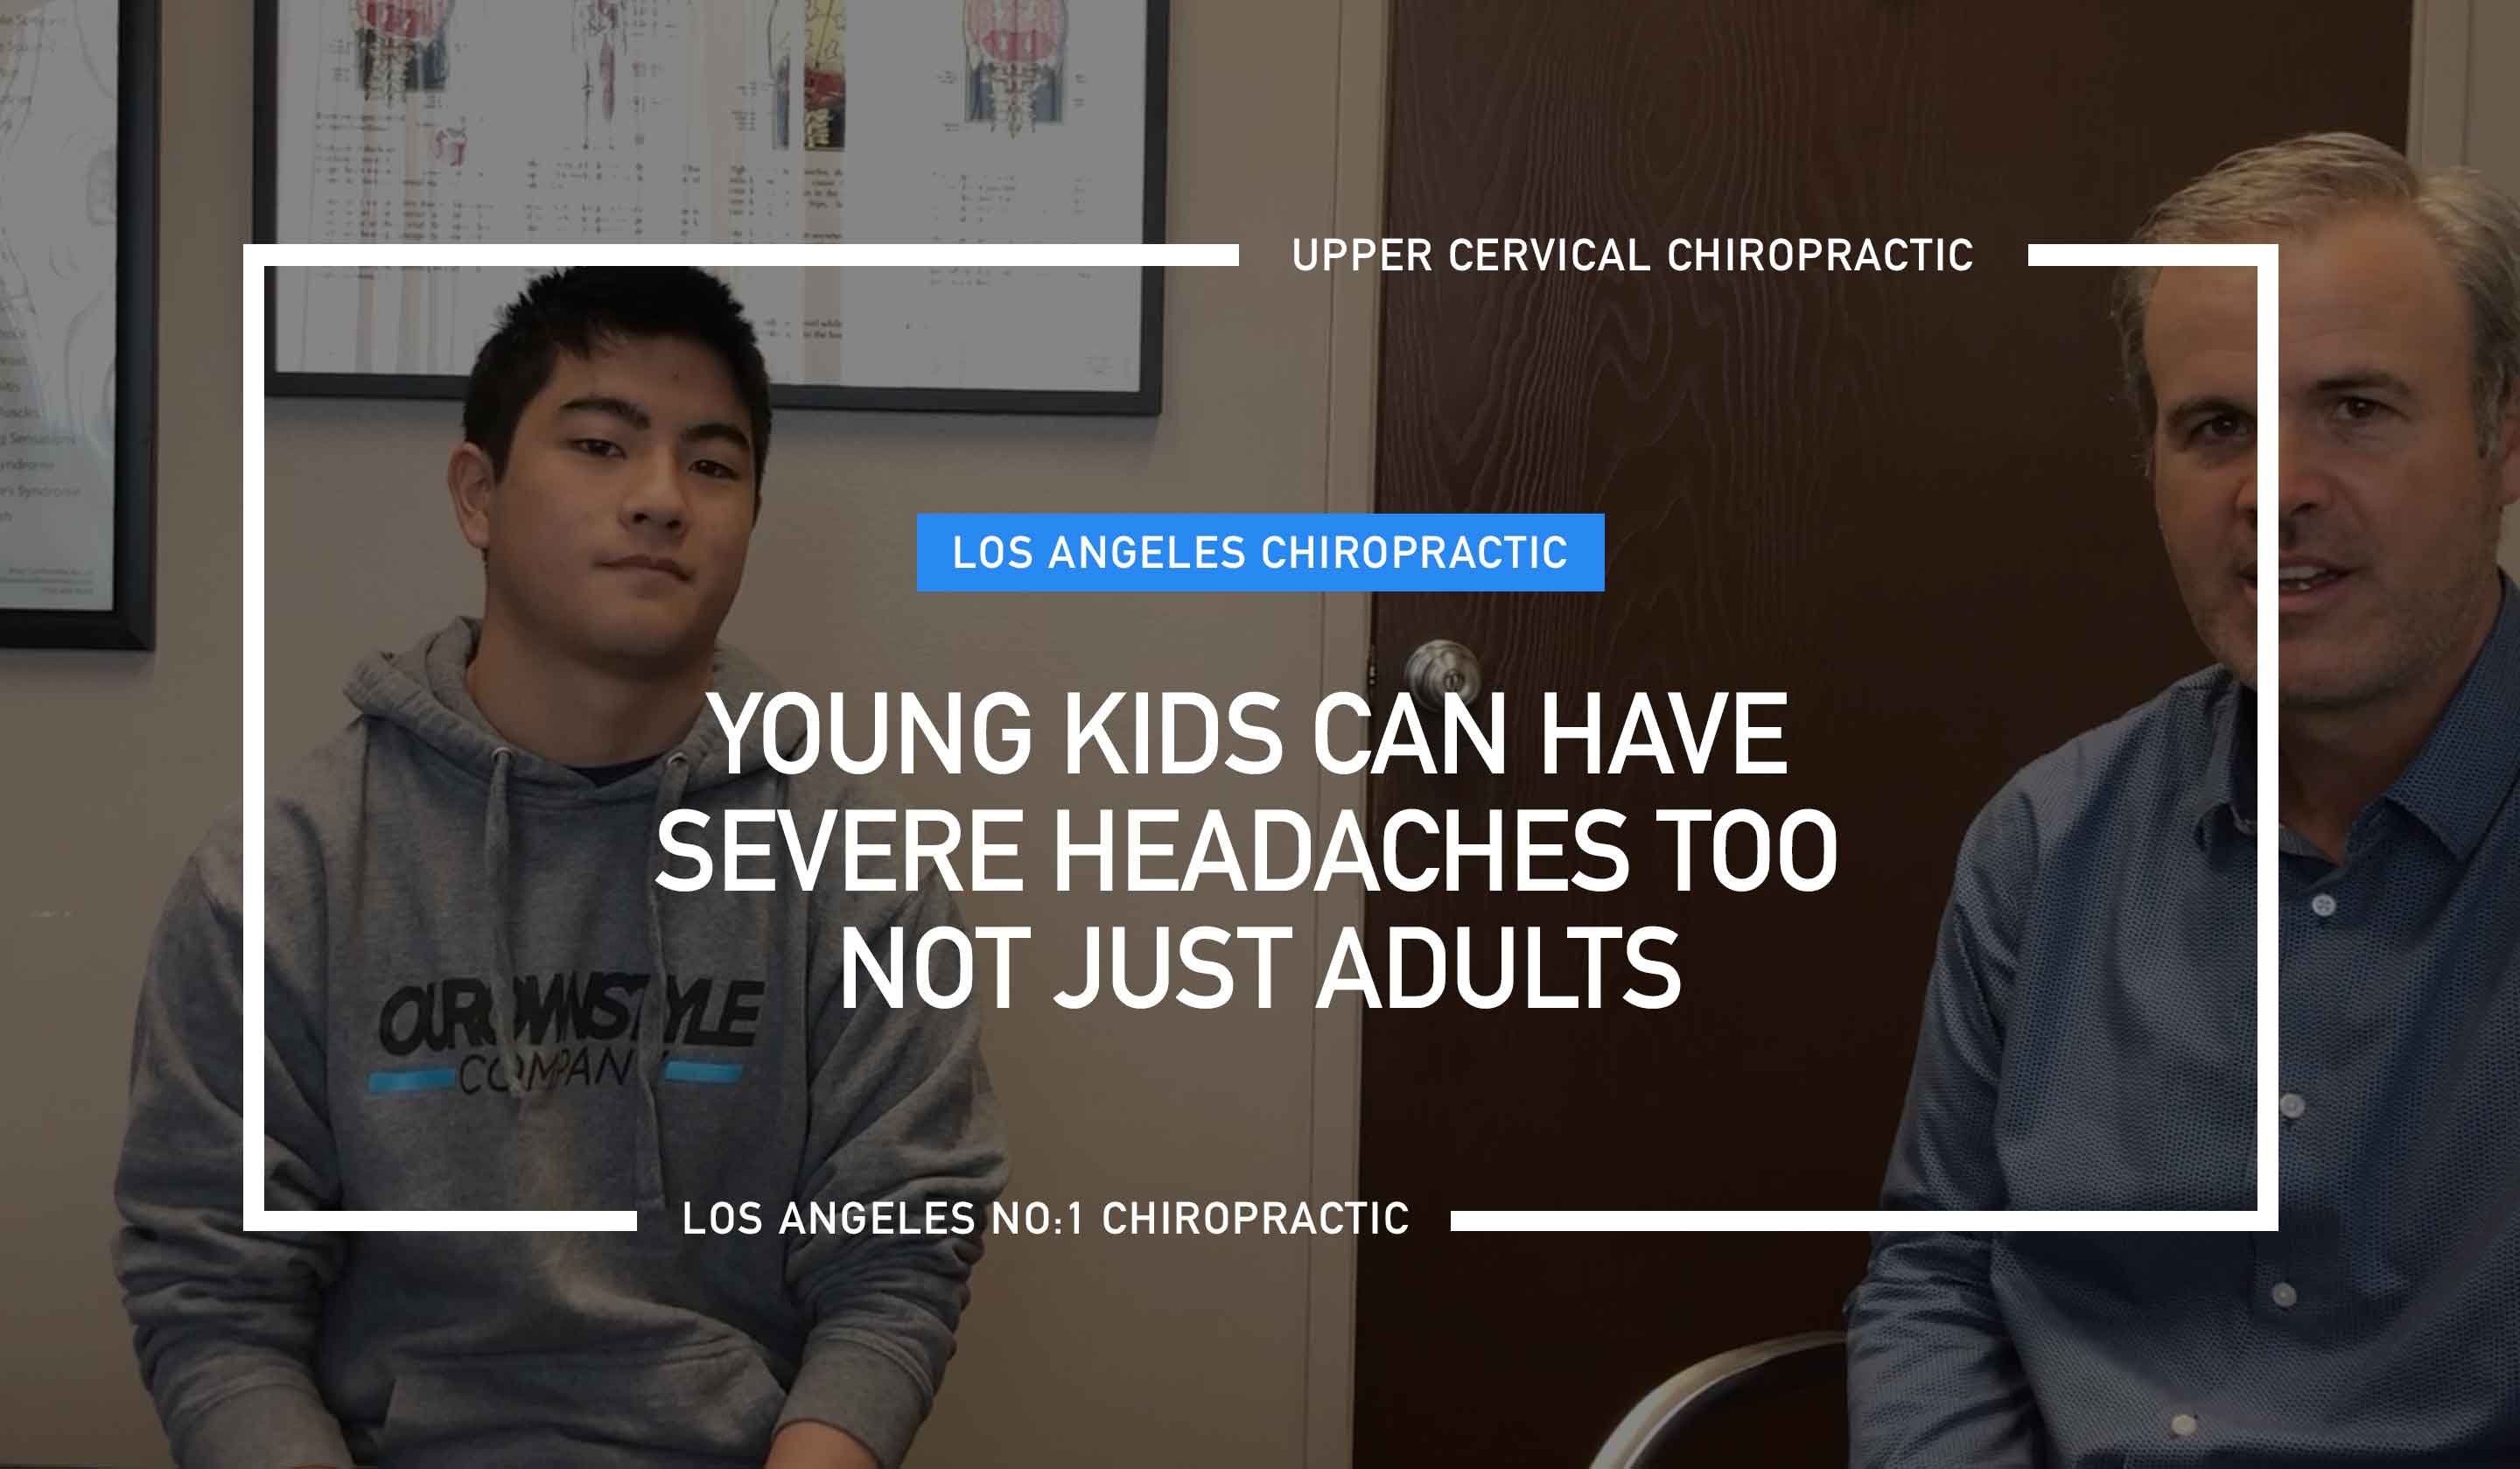 Young Kids Can Have Severe Headaches too not Just Adults